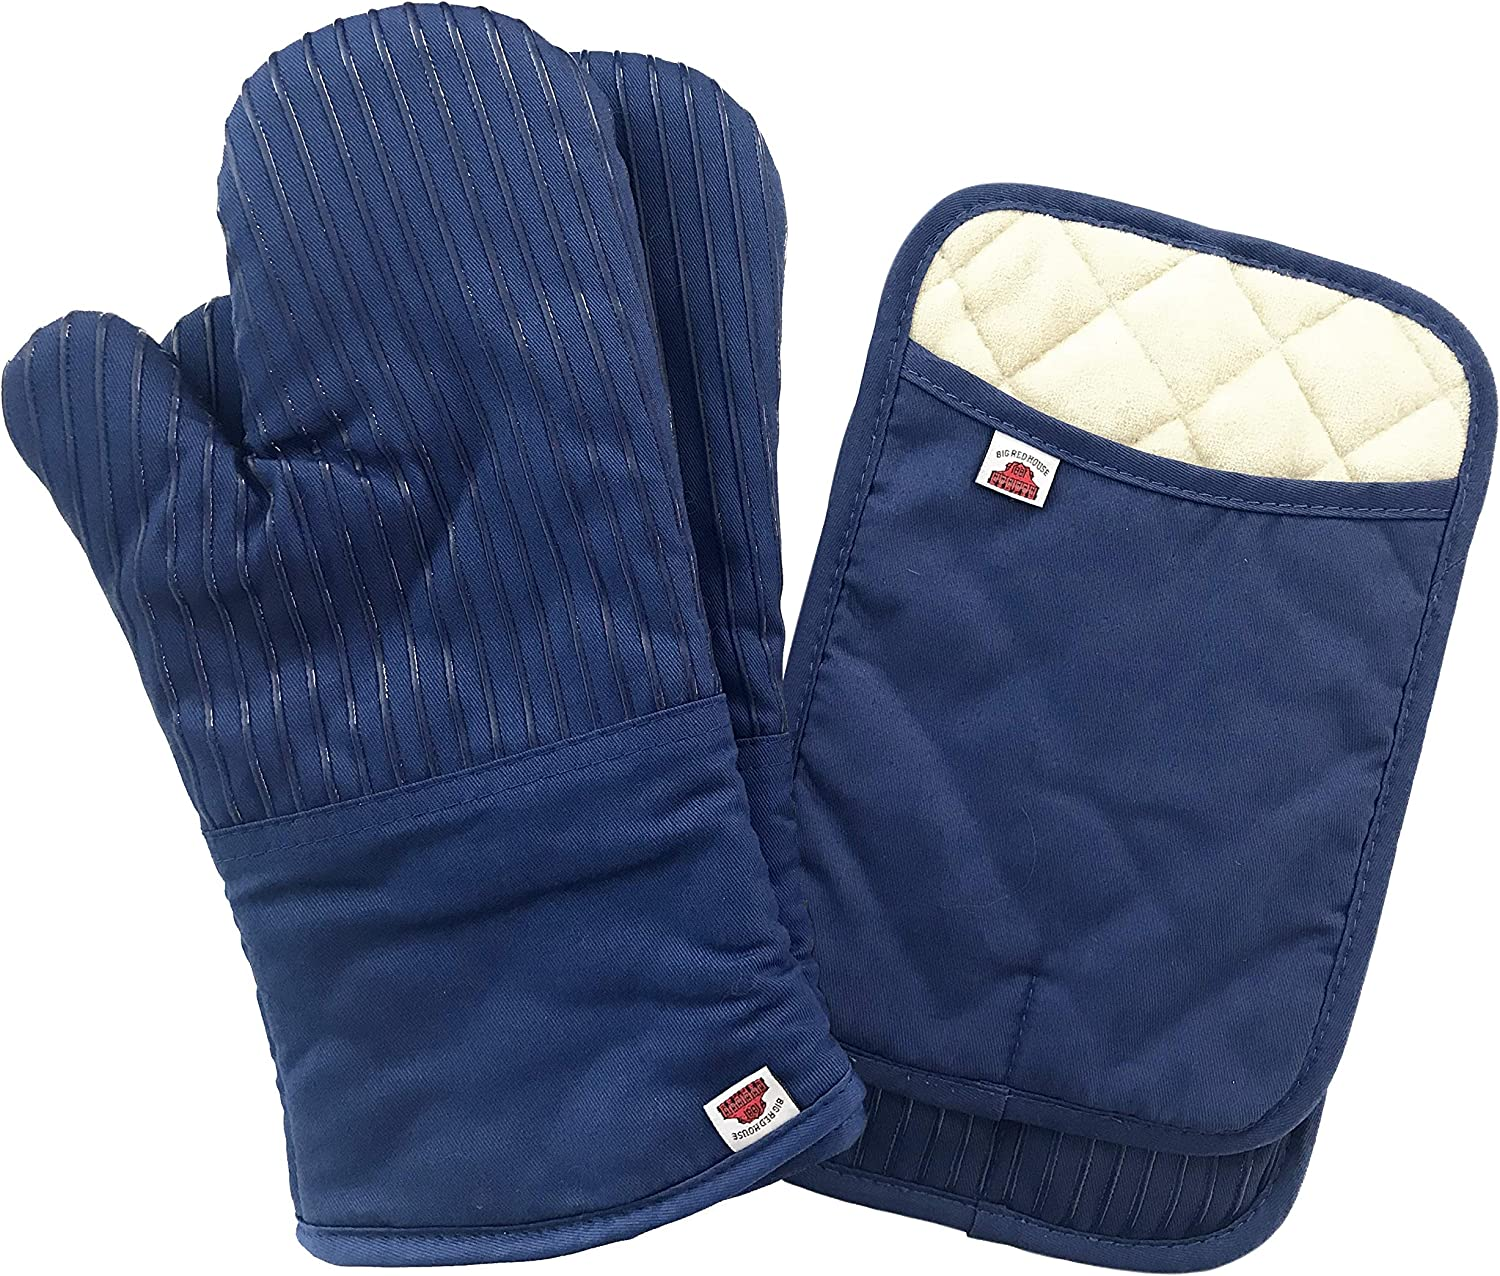 Big Red House Oven Mitts and Pot Holders Sets, with The Heat Resistance of Silicone and Flexibility of Cotton, Recycled Cotton Infill, Terrycloth Lining, 480 F Heat Resistant Pair Royal Blue